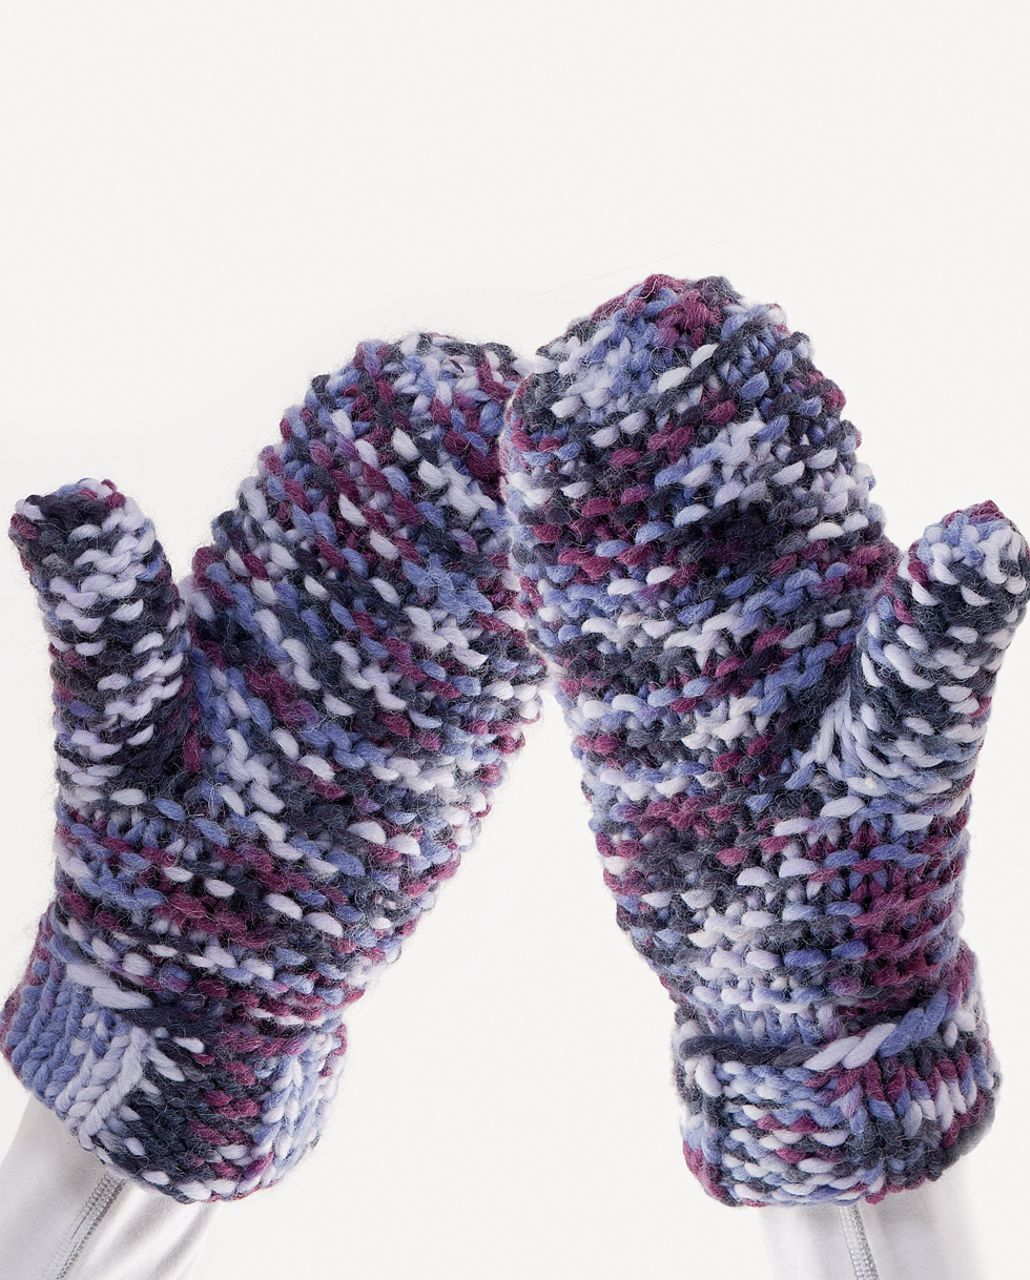 Lululemon Toasty Mitts - Black Swan Lilac Persian Purple Plum Space Dye